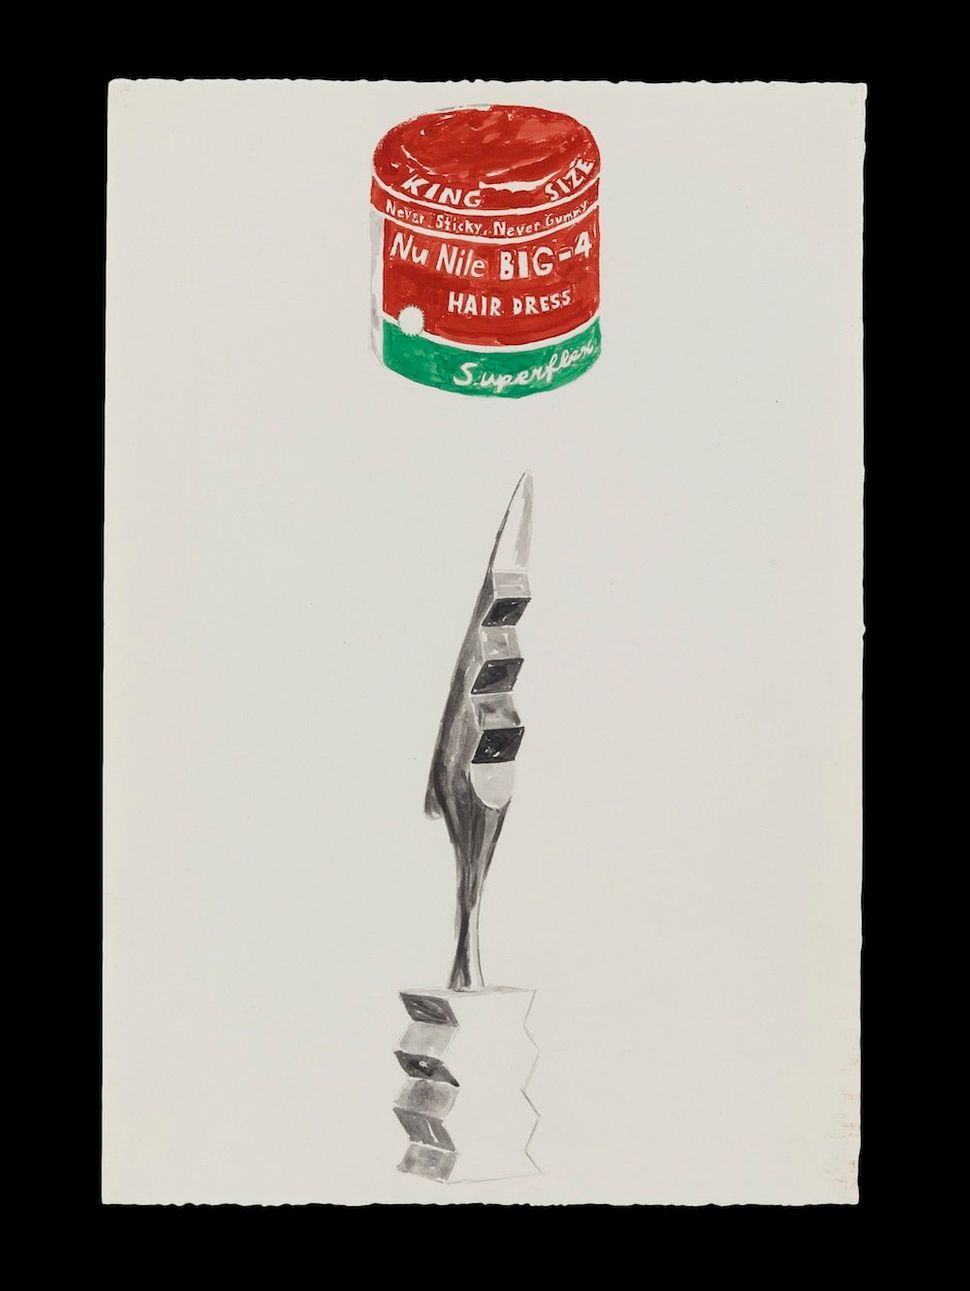 Glenn Ligon<br> The Cock/Nu Nile, 1985 Synthetic polymer, ink and graphite on paper 22 1/8 × 15 1⁄4 in. Courtesy the artist